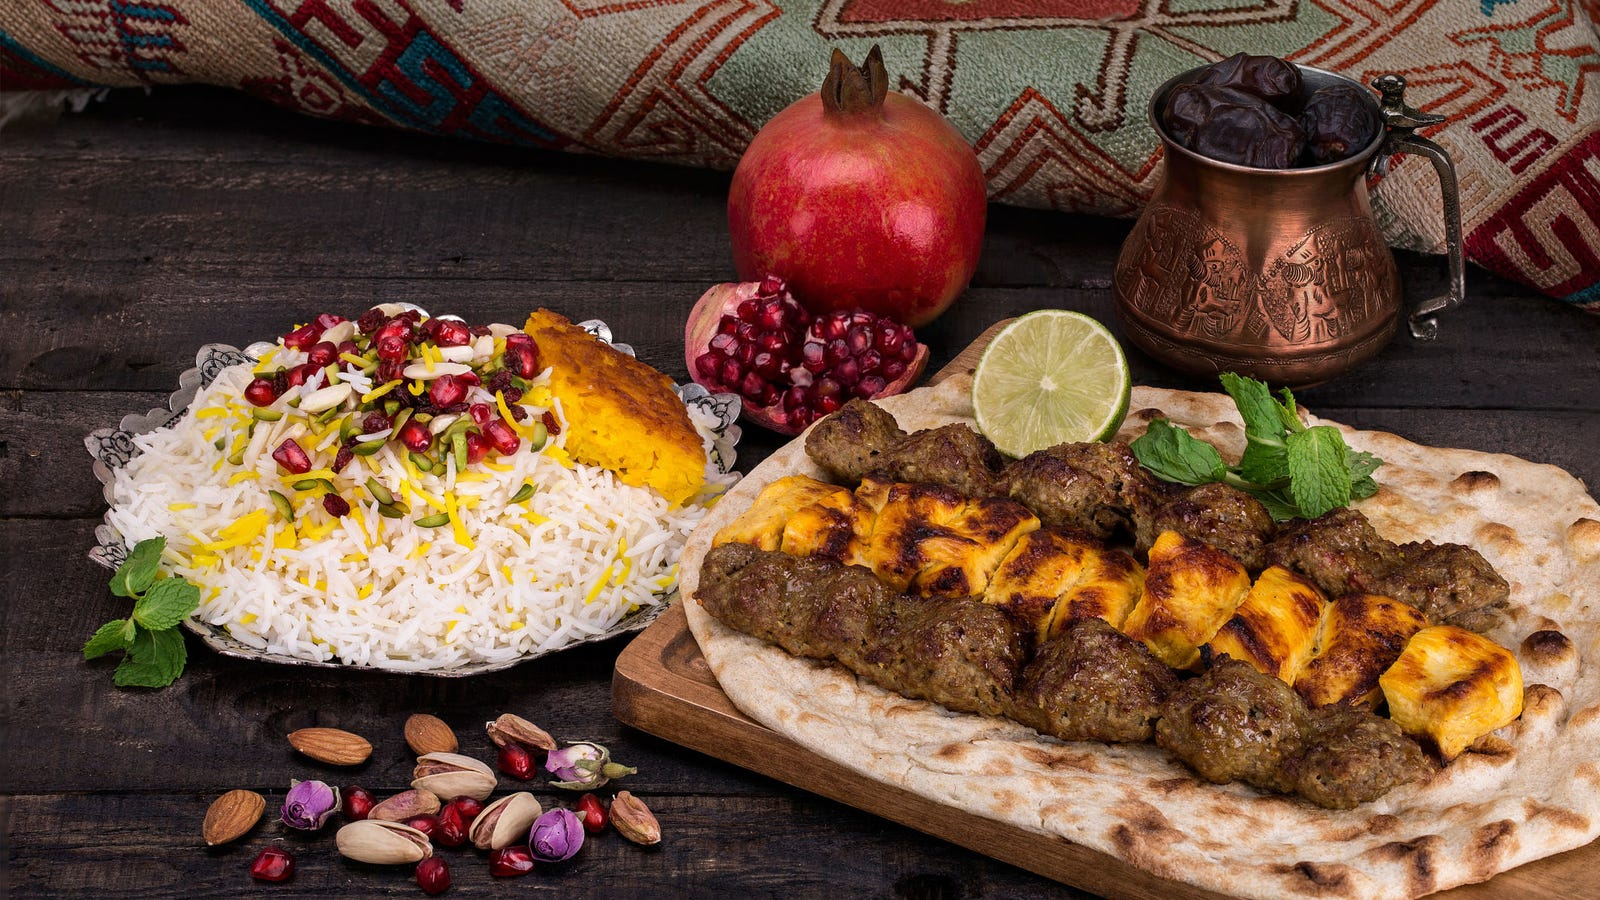 Progressive Near Me >> The Takeout's guide to Persian food